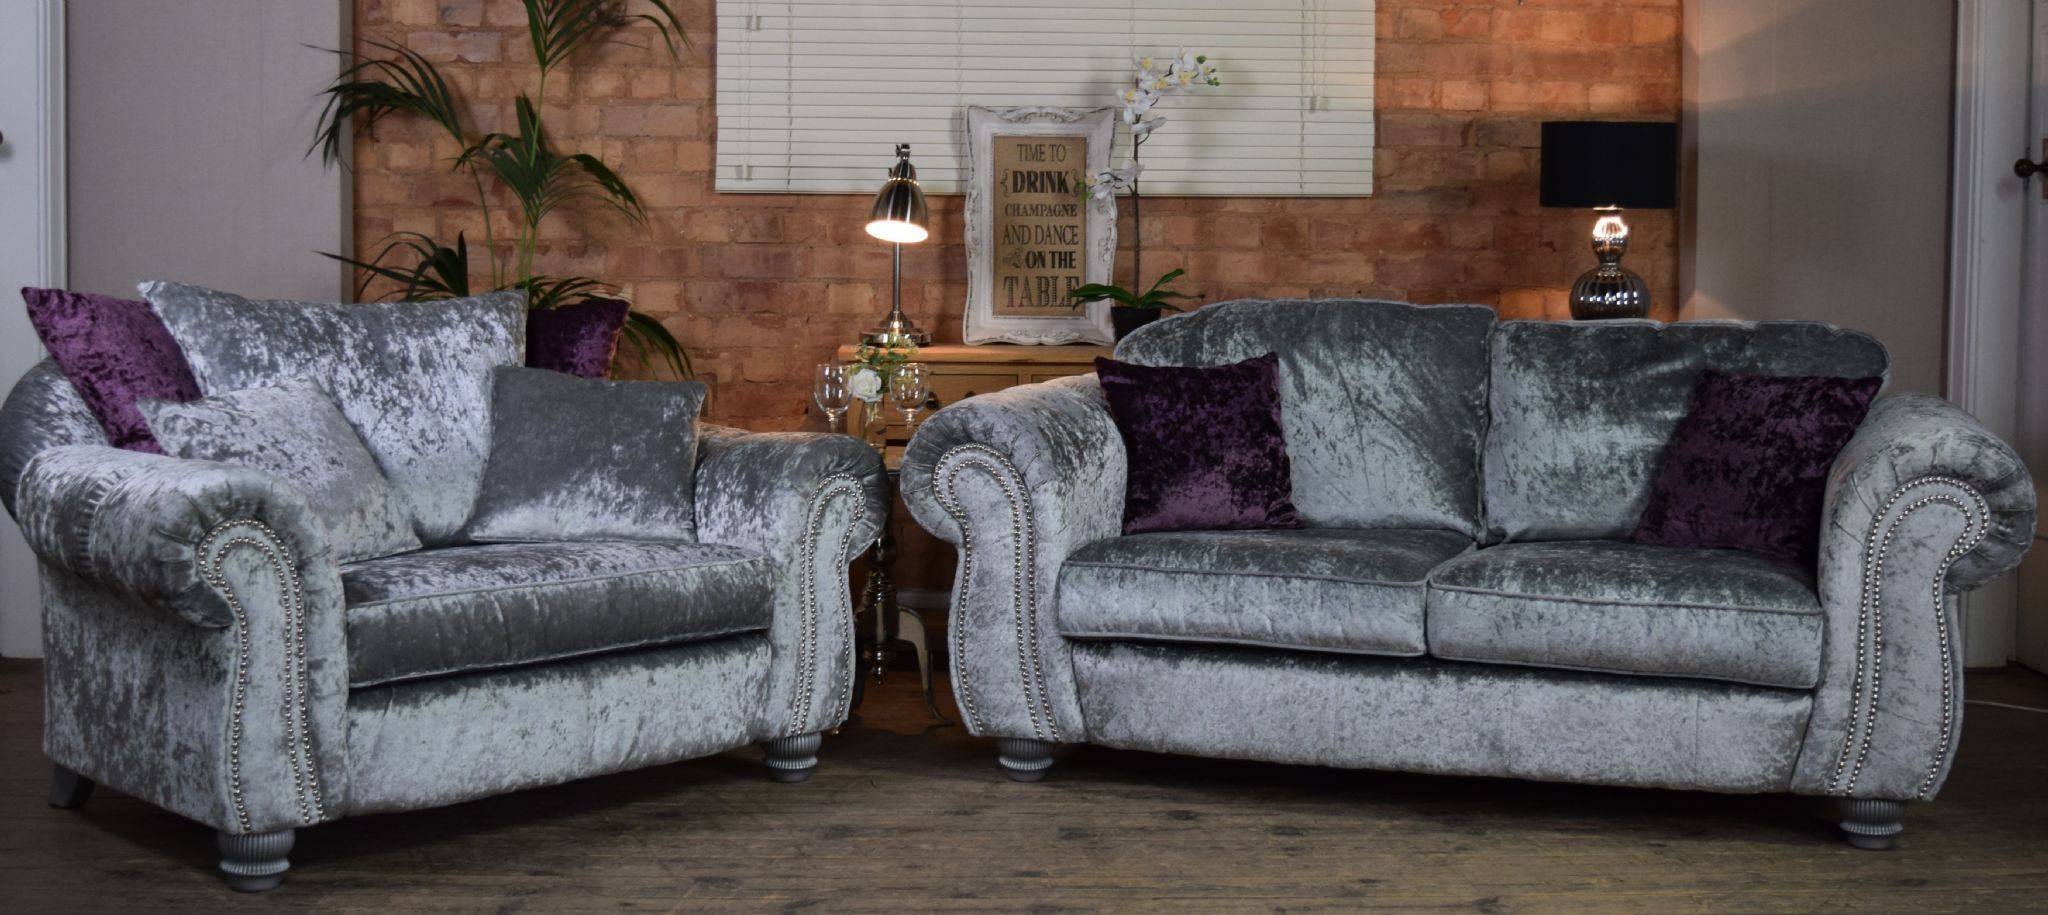 Set Luna Quantas 2 Seater Sofa Cuddle Chair Suite Set – Silver Throughout 3 Seater Sofa And Cuddle Chairs (View 14 of 30)